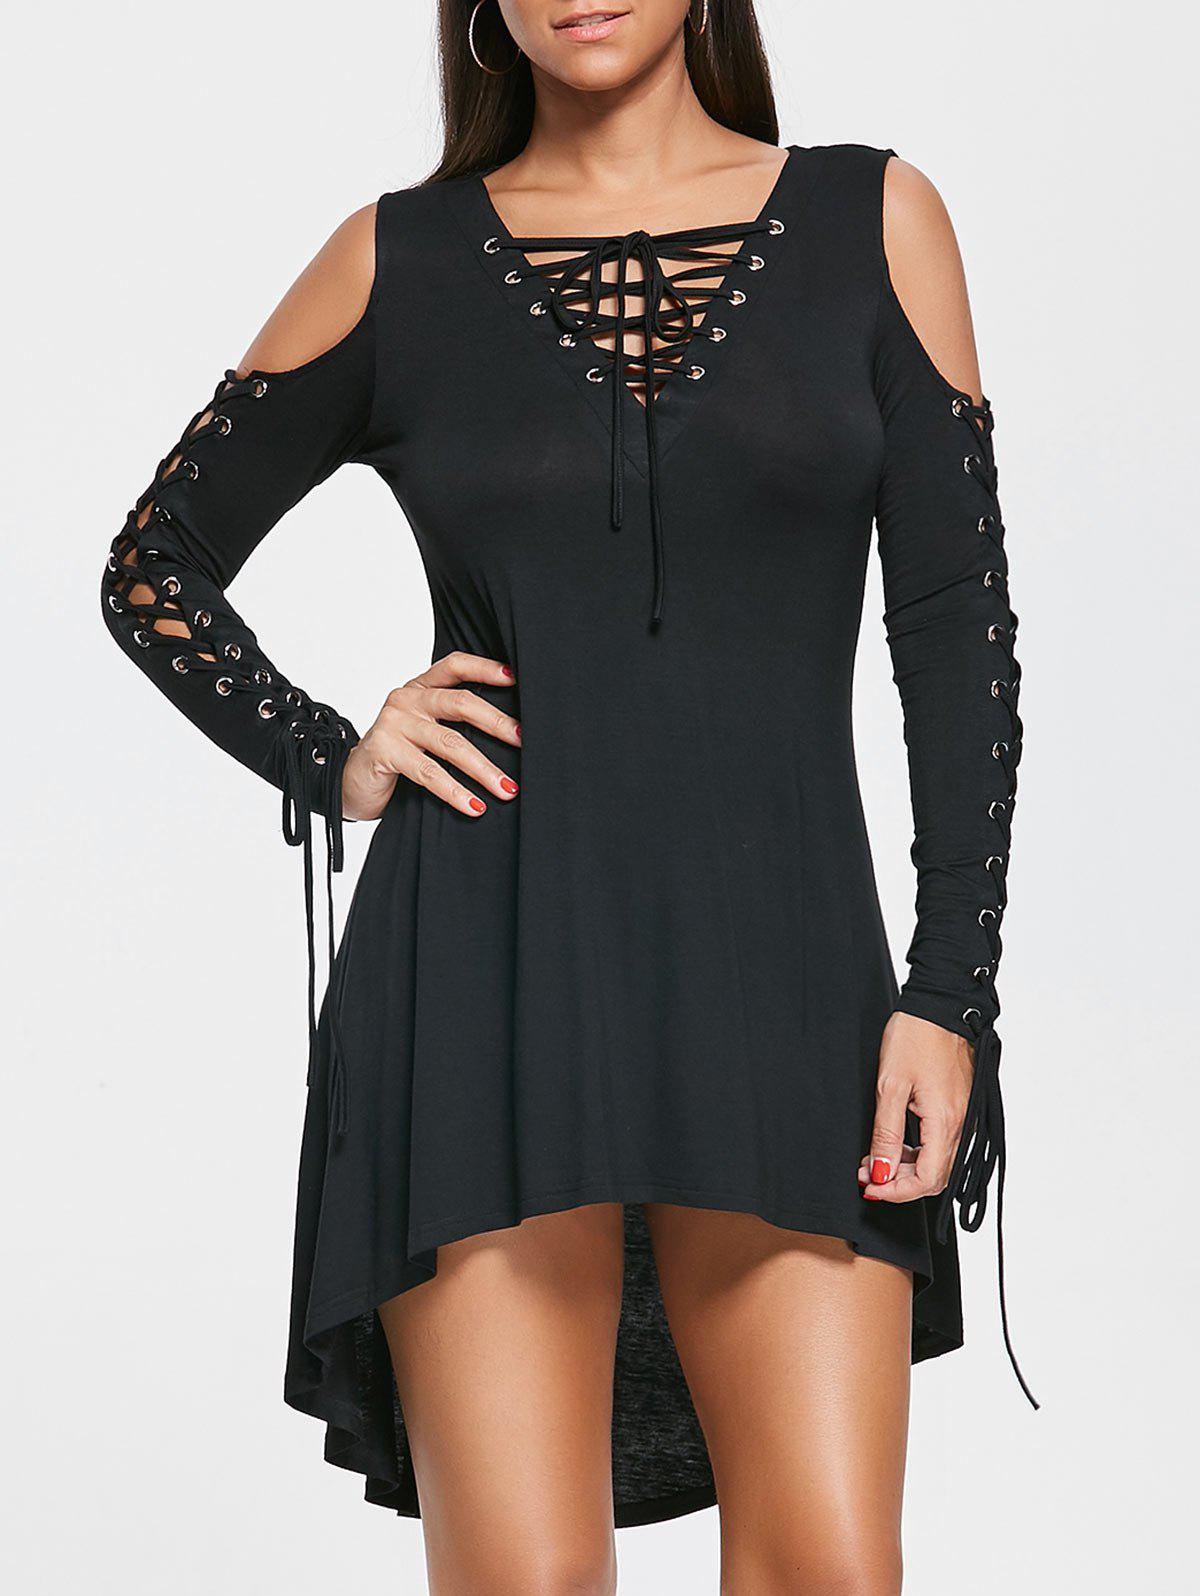 New Open Shoulder Lace Up Cut Out Gothic Dress